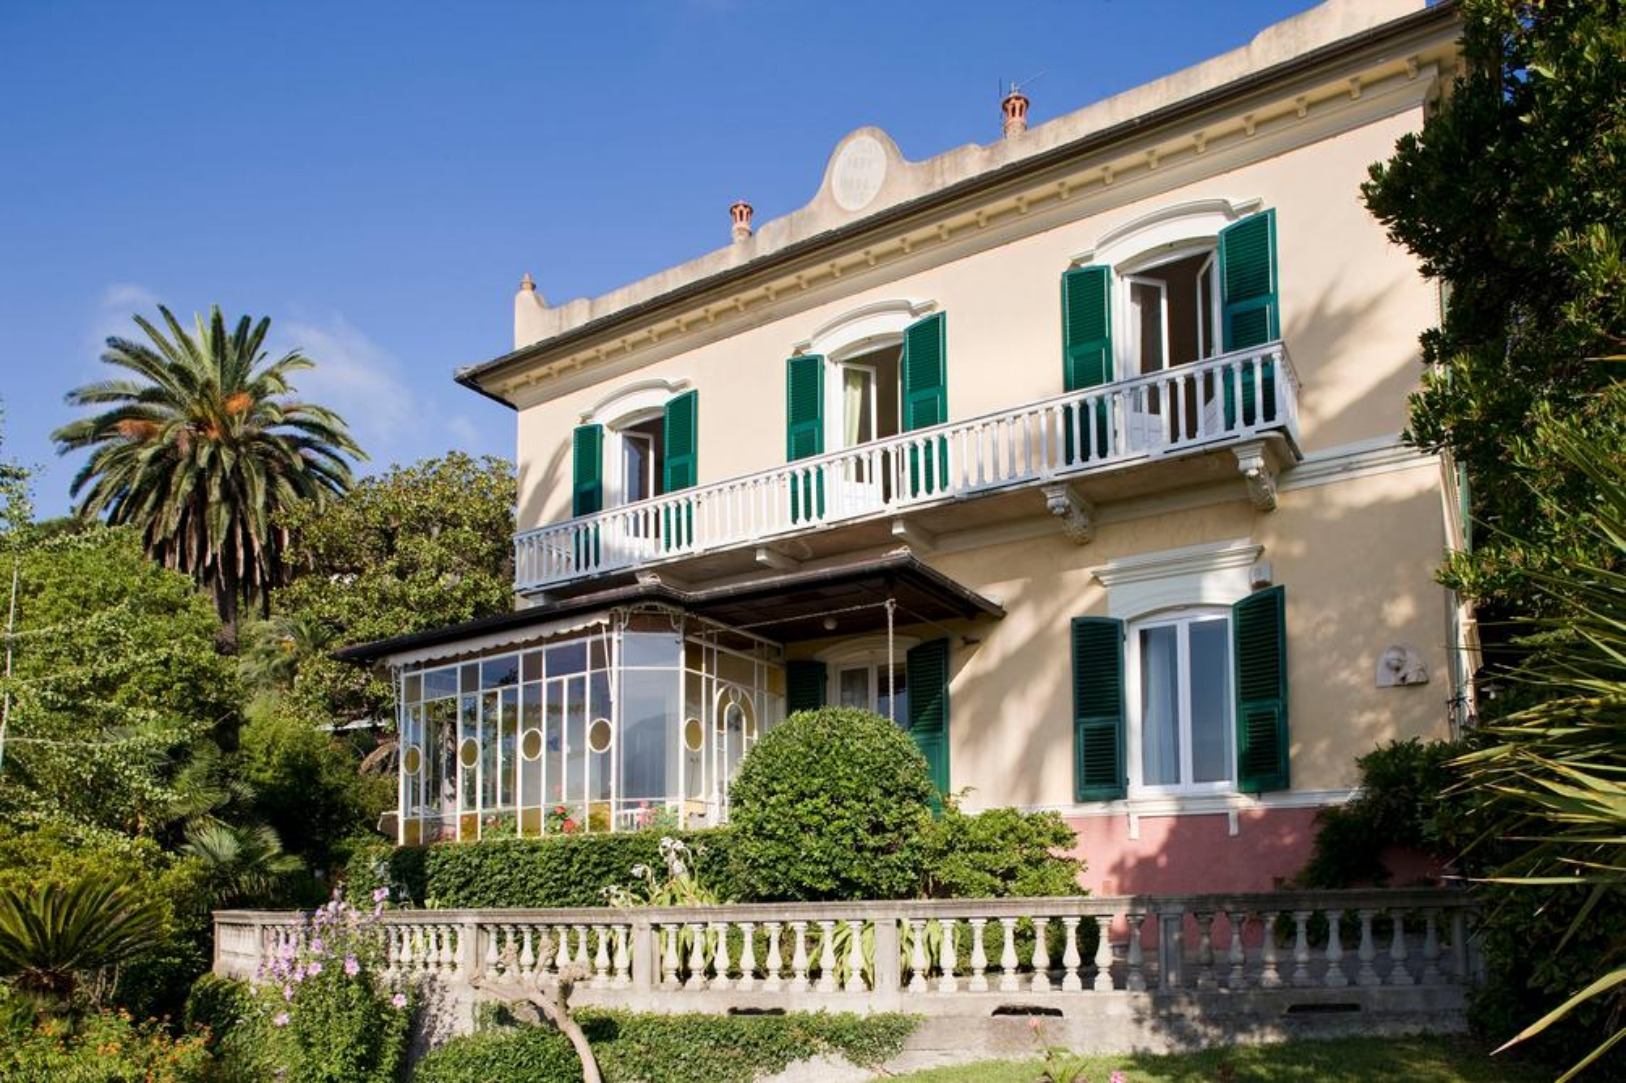 A house with bushes in front of a building at Villa Olimpo.